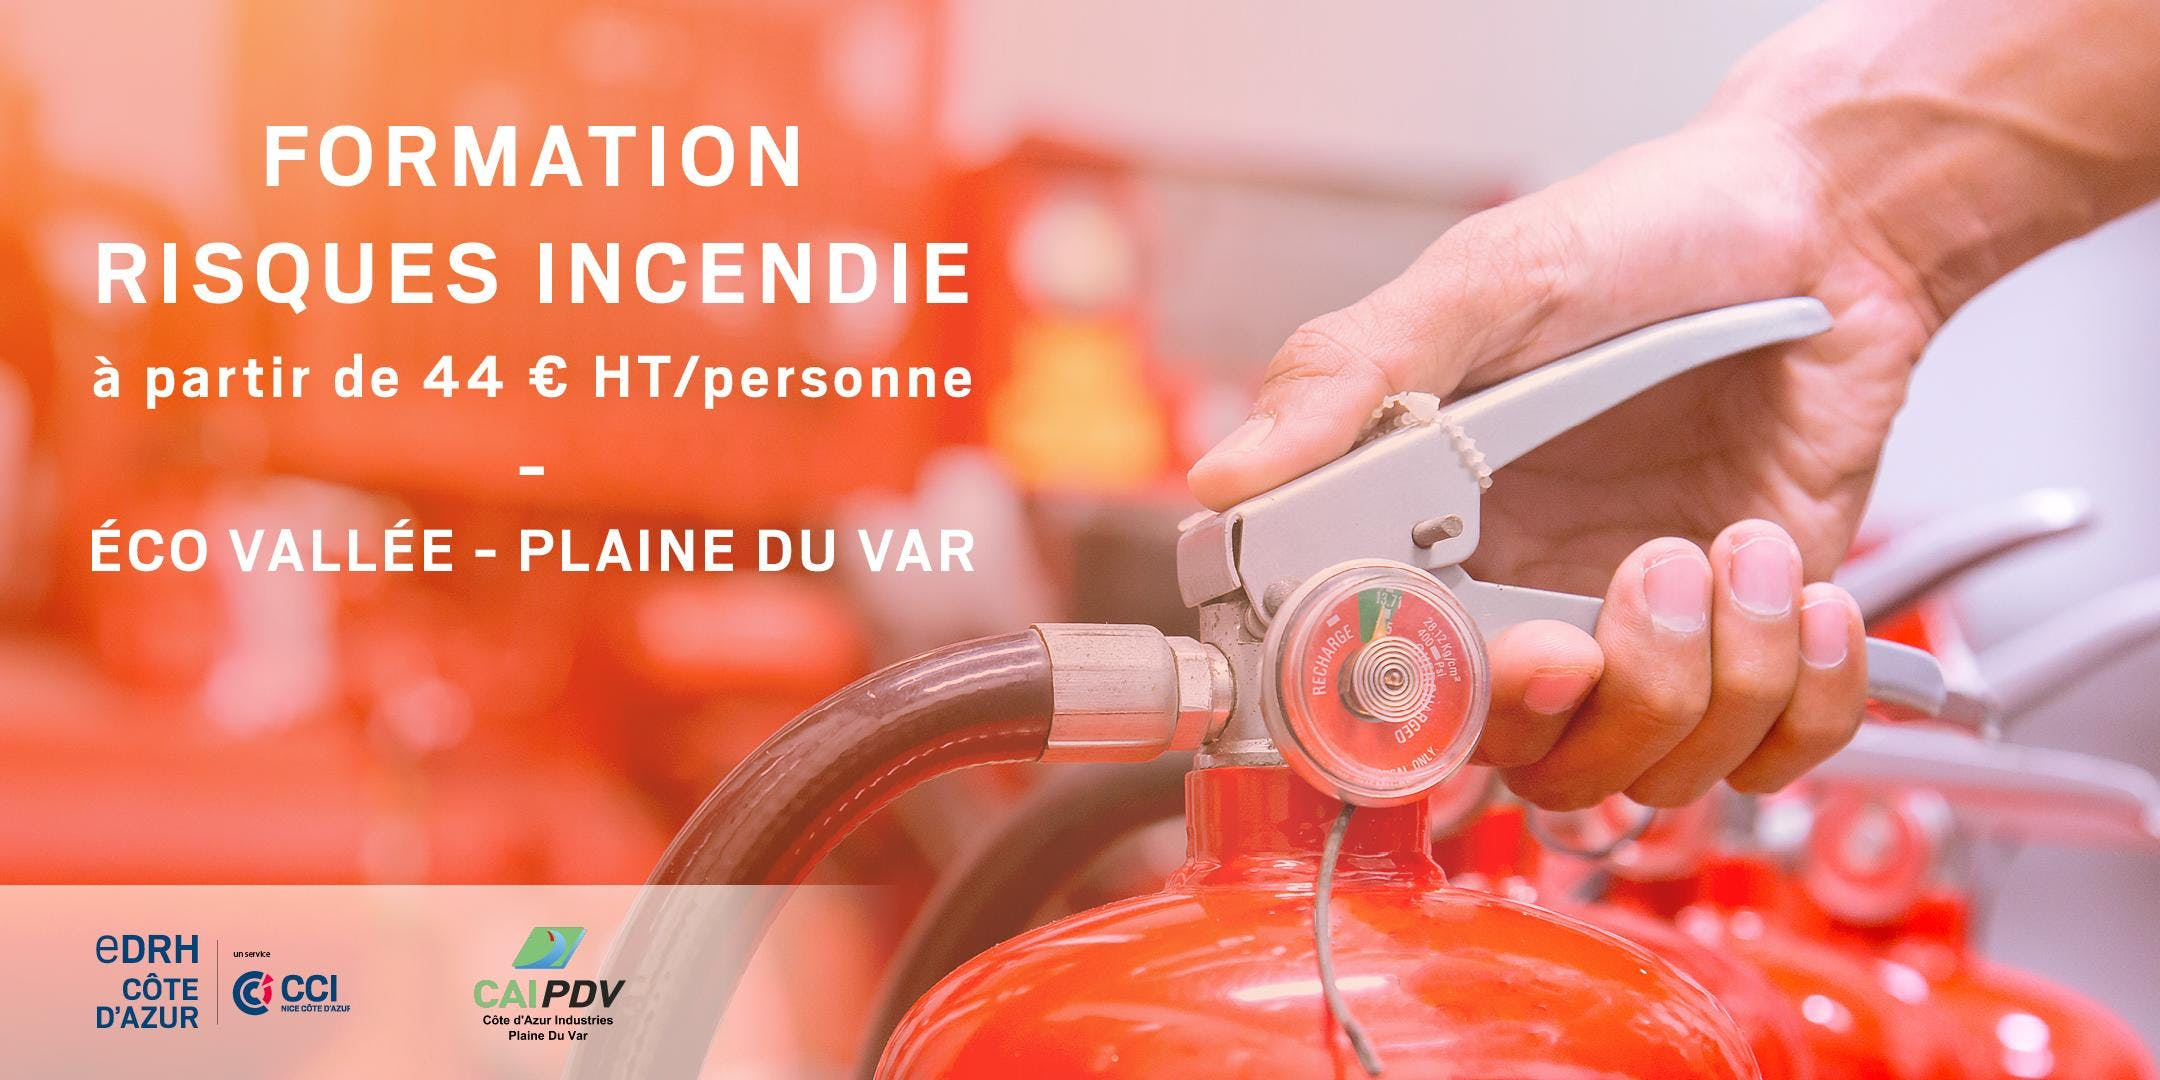 Formation Risques Incendie